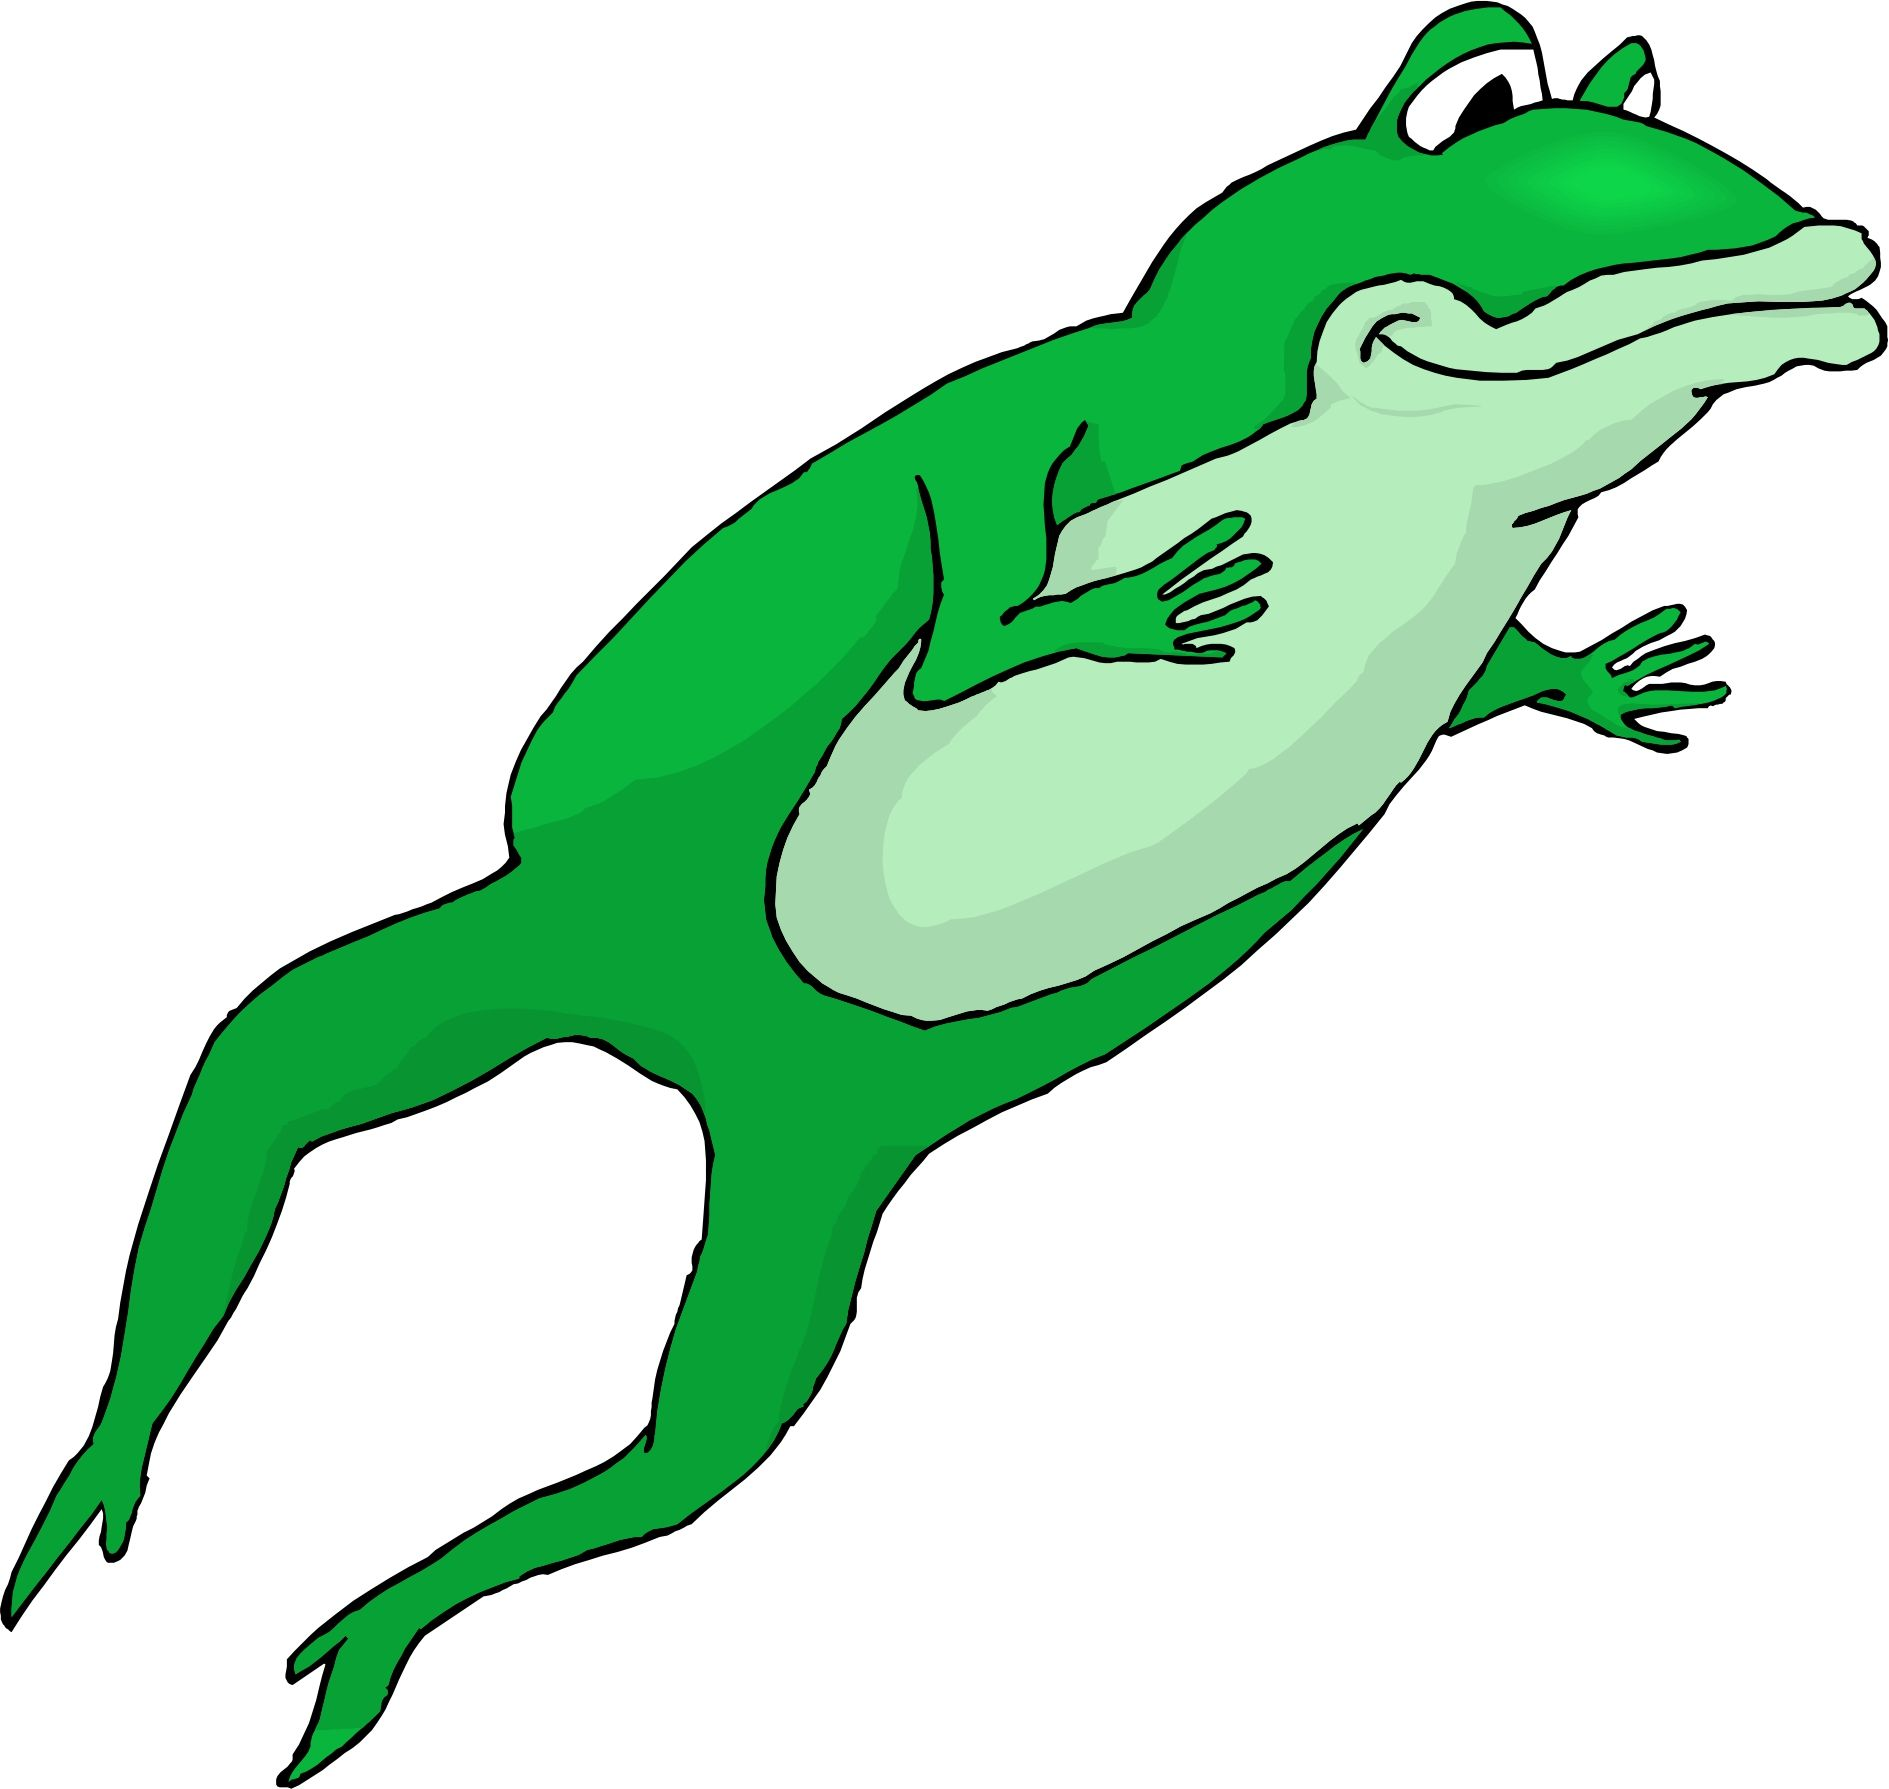 Image Search Cartoon Leaping Frog clipart.